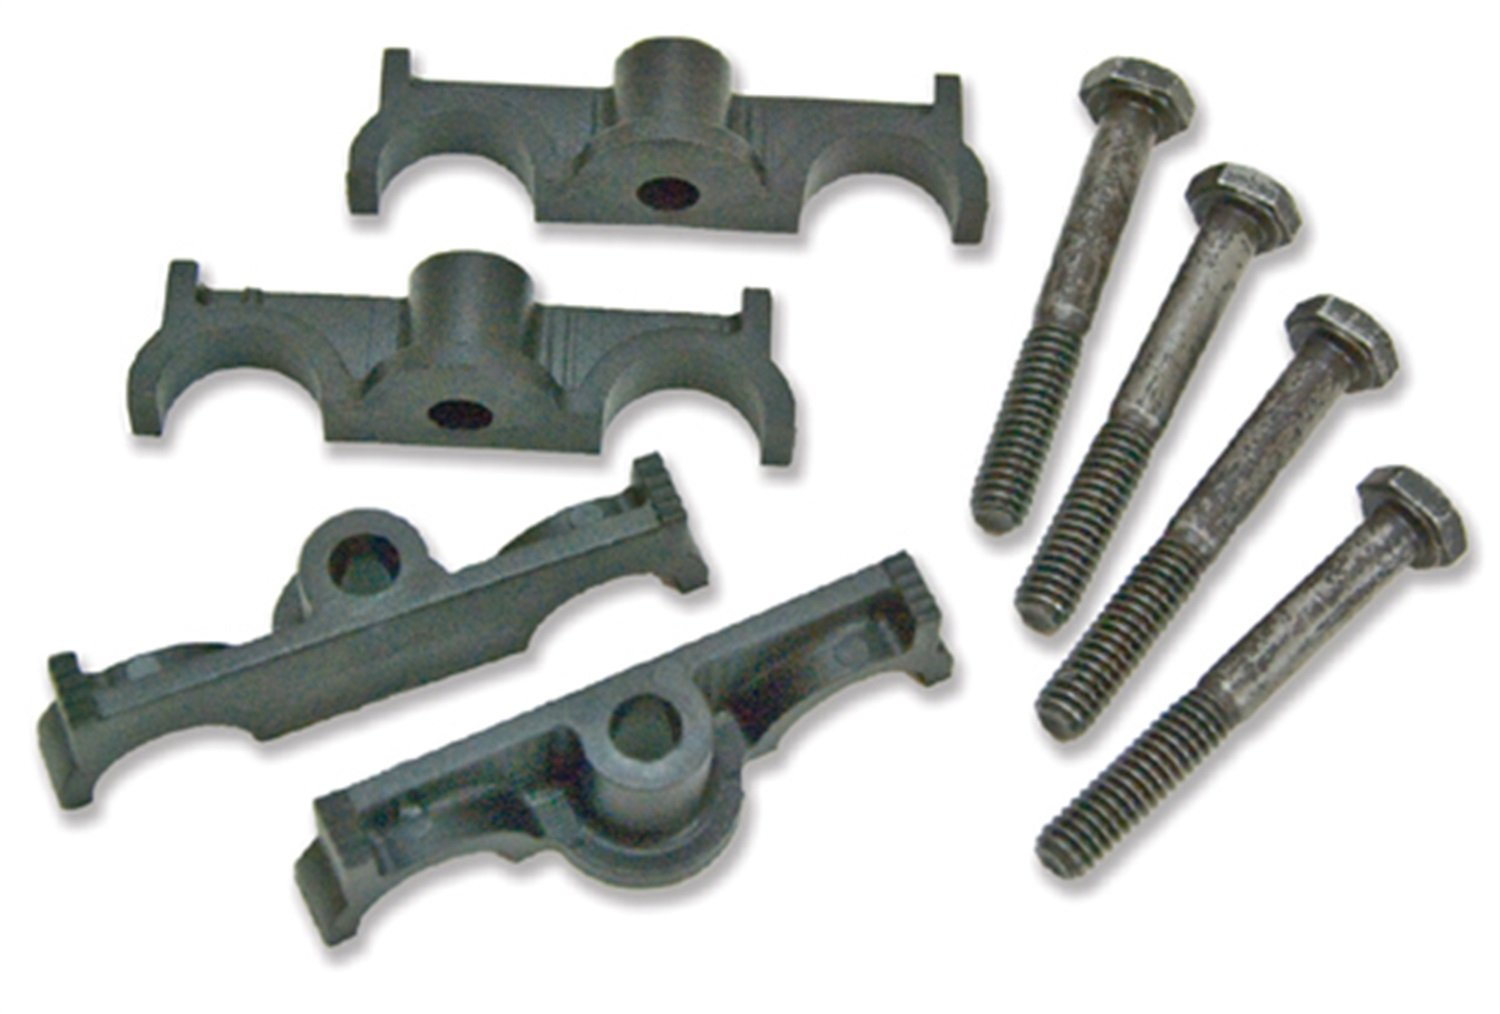 Flex-a-lite 3909 GatorClips Oil Cooler Mounting Clamps - Set of 9